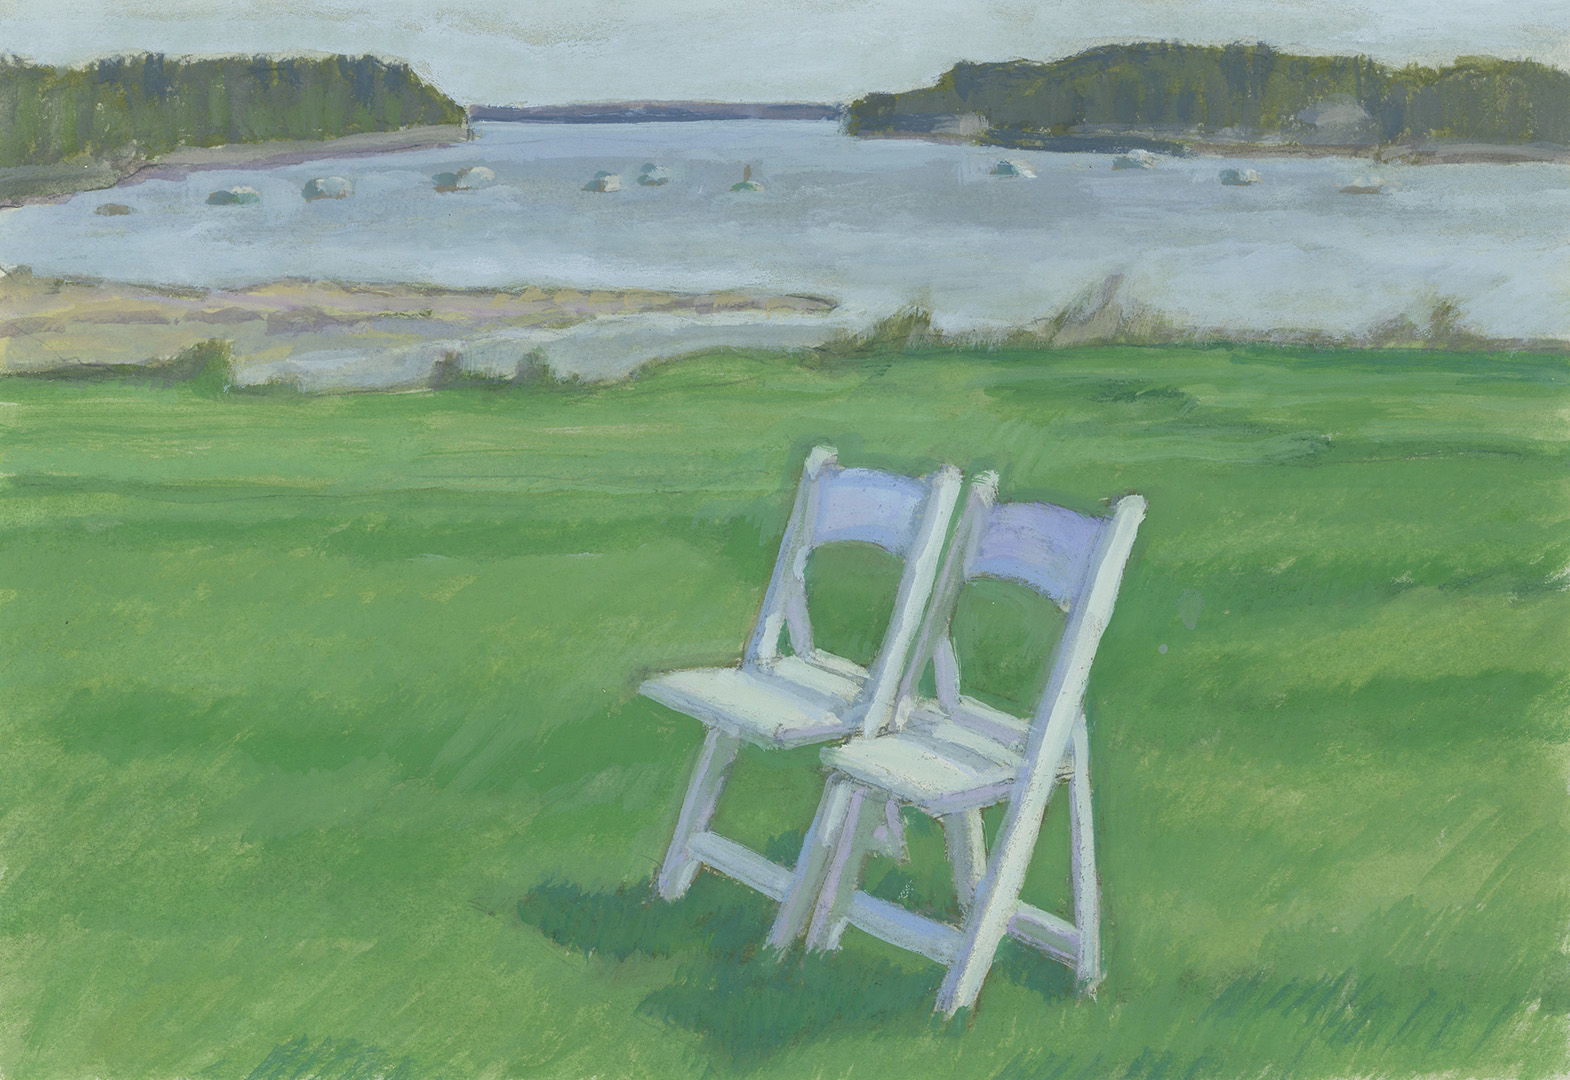 Bride and groom's chairs. Northeast Harbor, Acadia, ME. June 2019